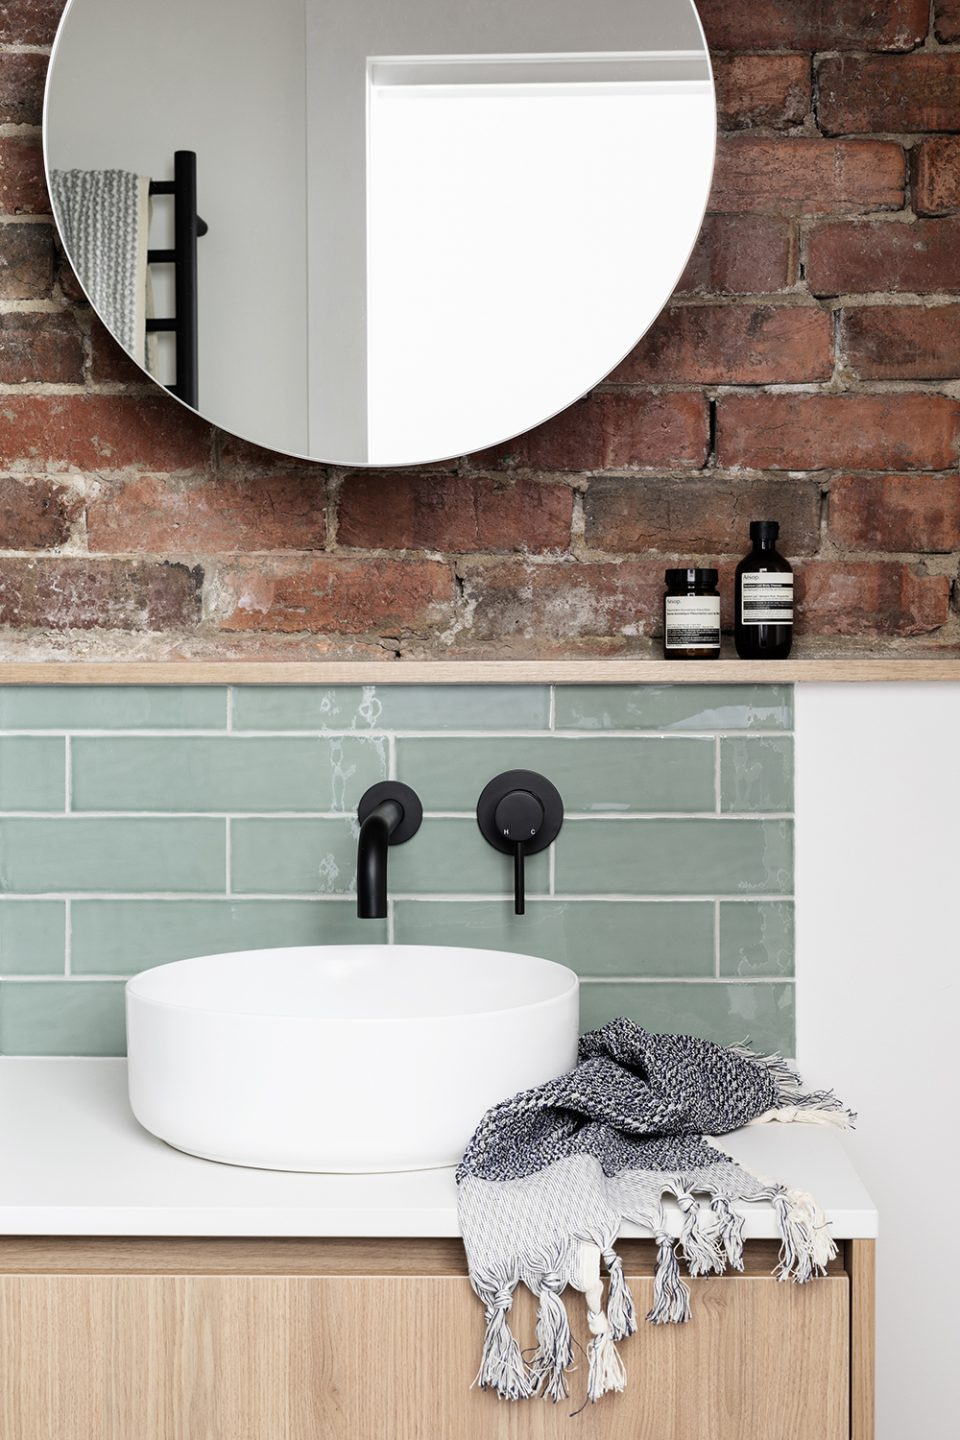 Bathroom Renovations Melbourne & VIC | Large & Small - All ...